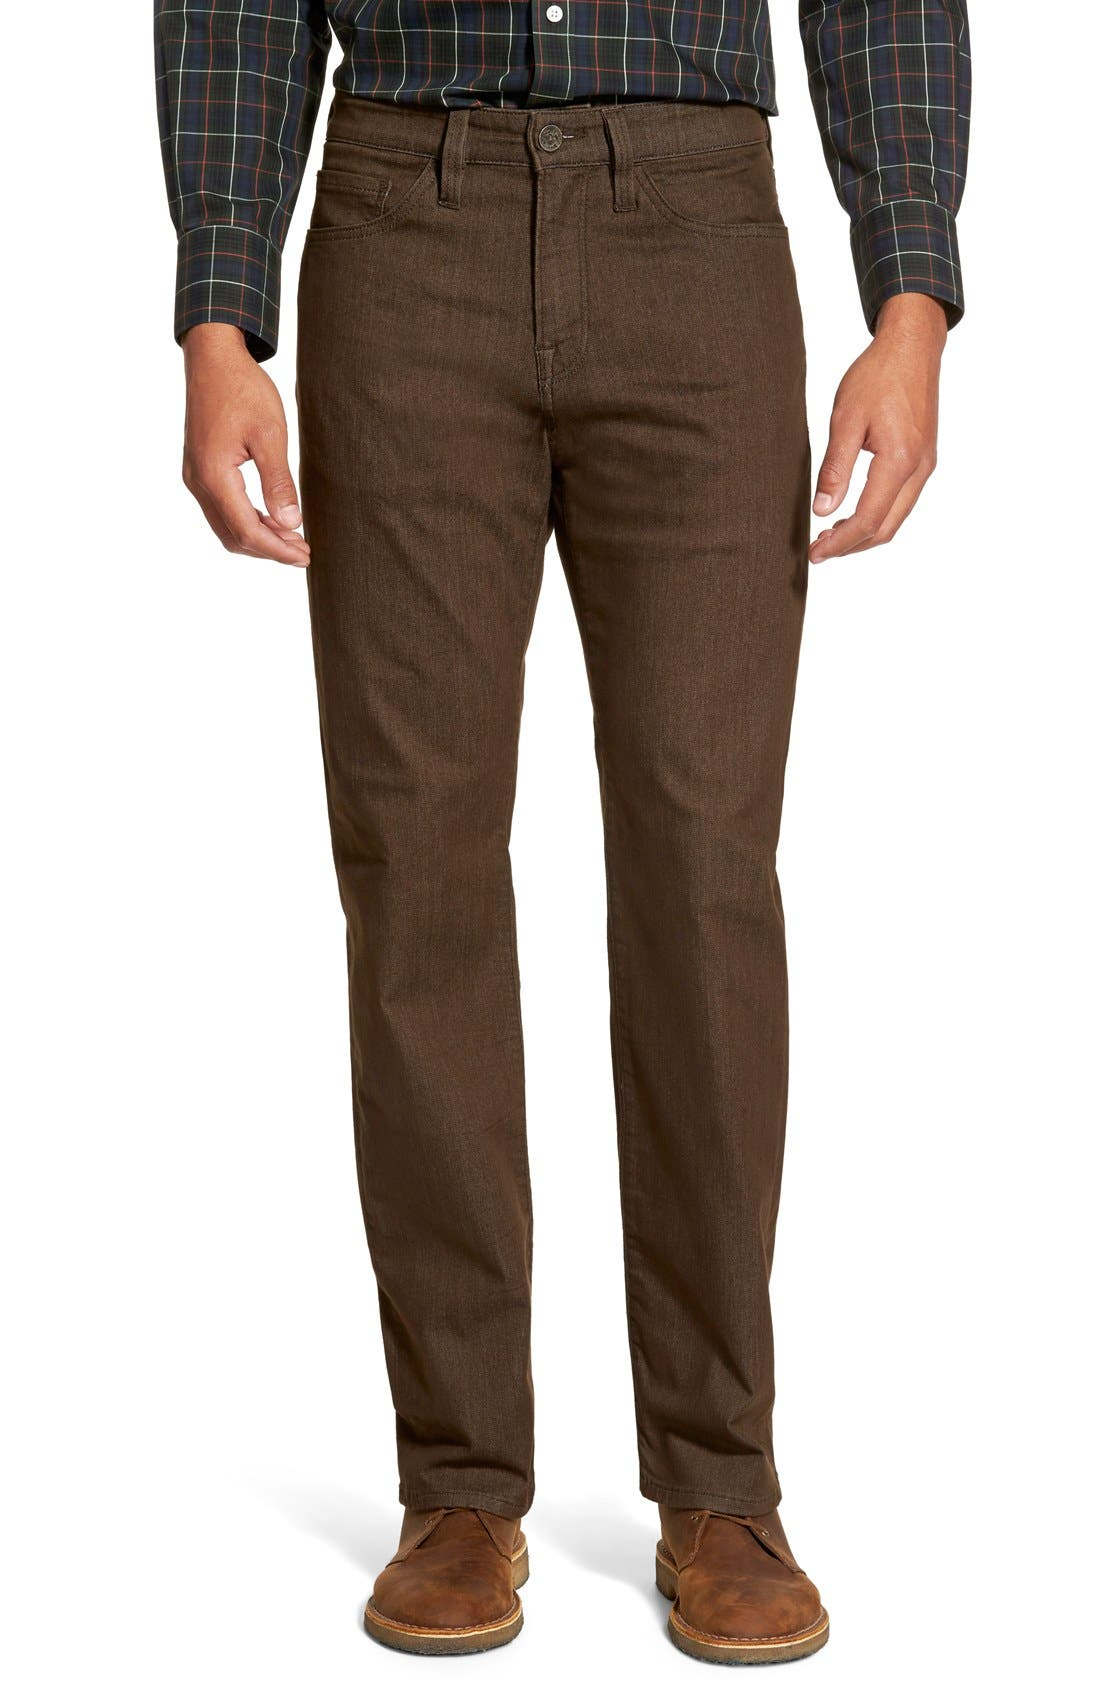 'Charisma' Relaxed Fit Jeans,                             Main thumbnail 1, color,                             Brown Comfort